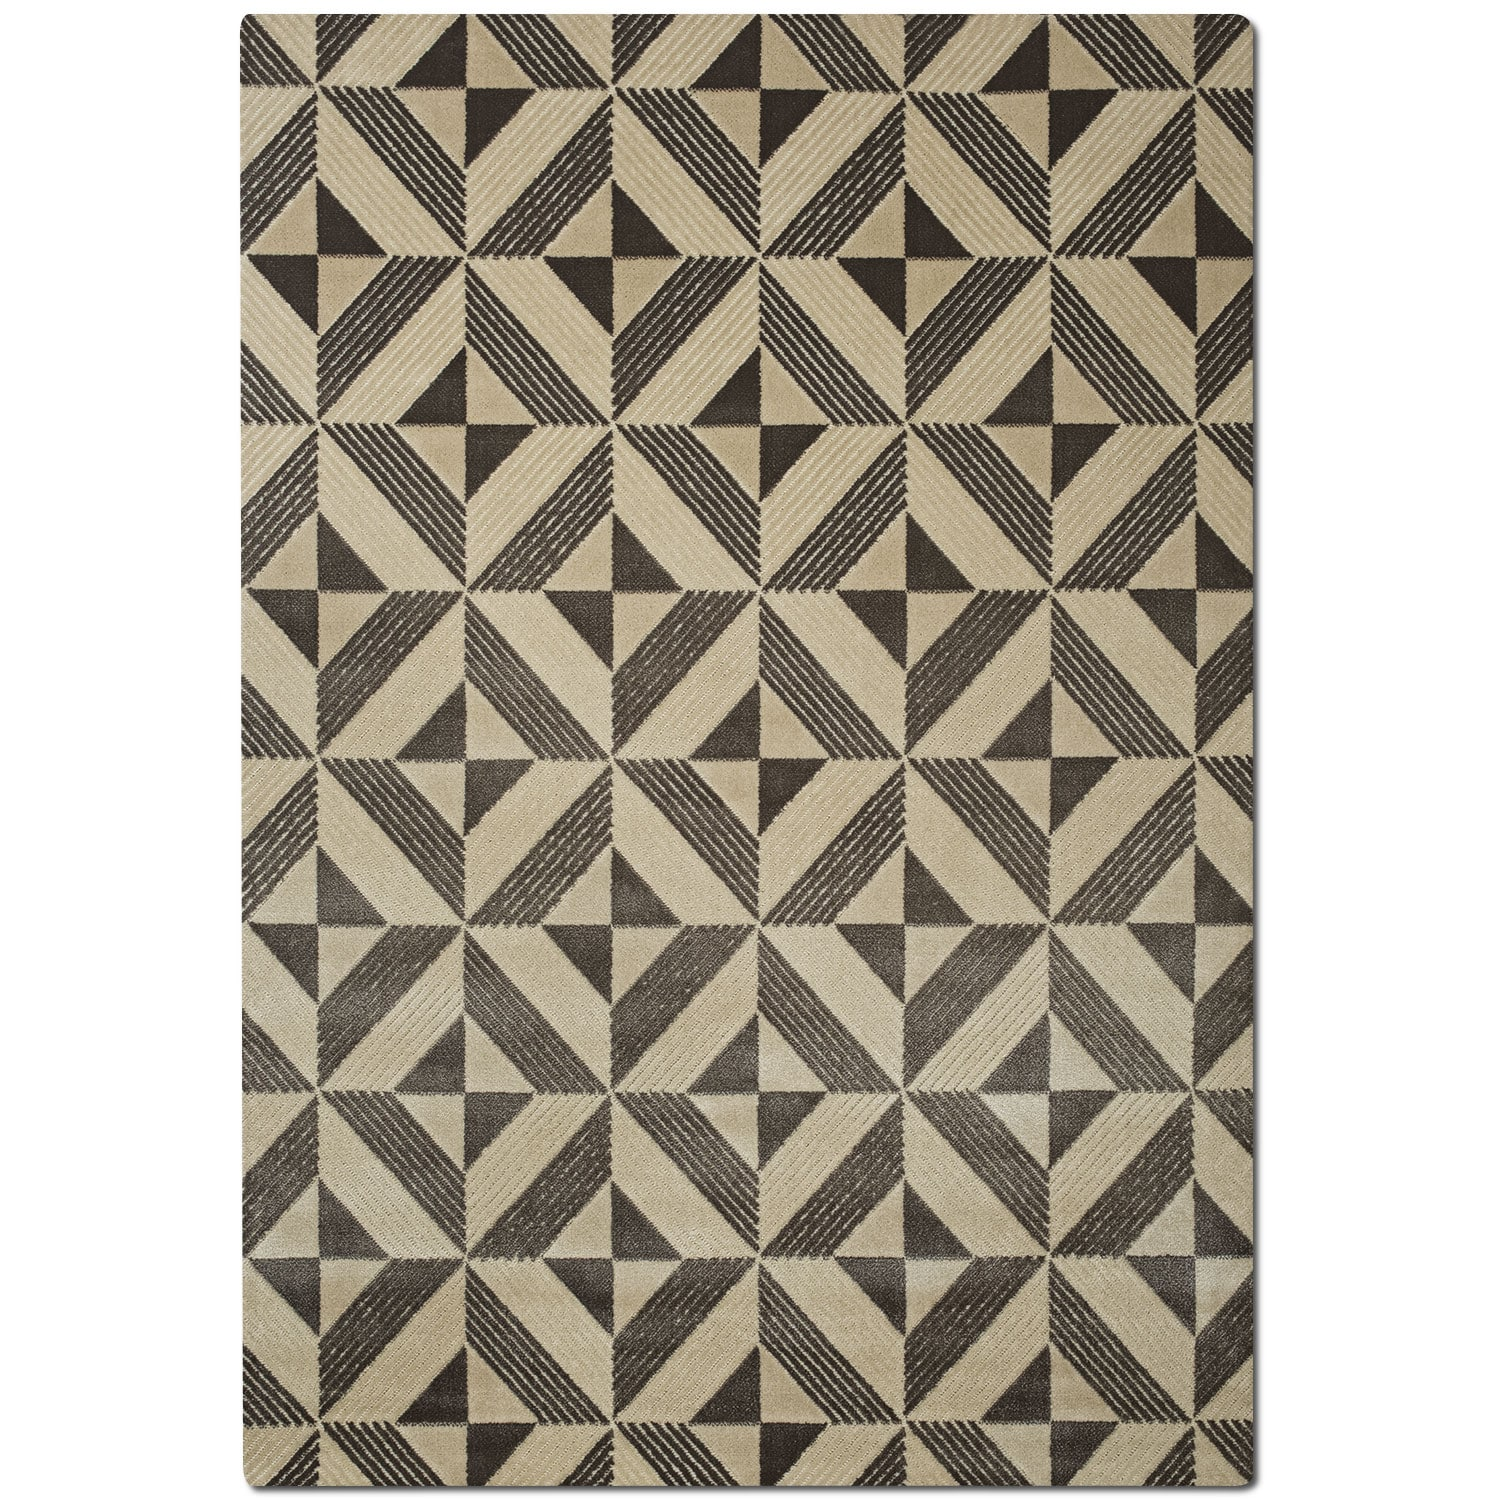 Metro 5' x 8' Area Rug - Charcoal and Ivory